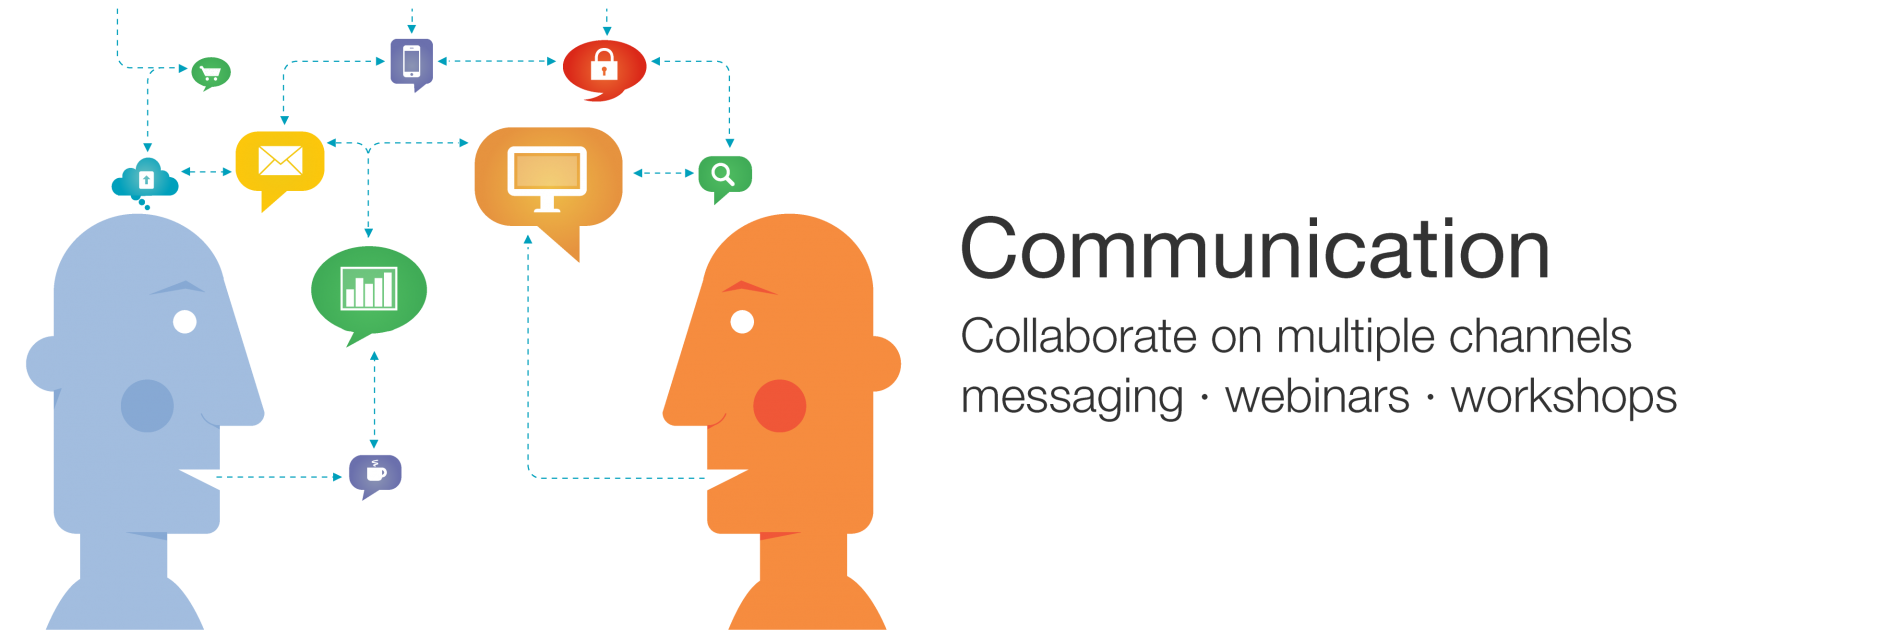 Communication - Collaborate on multiple channels